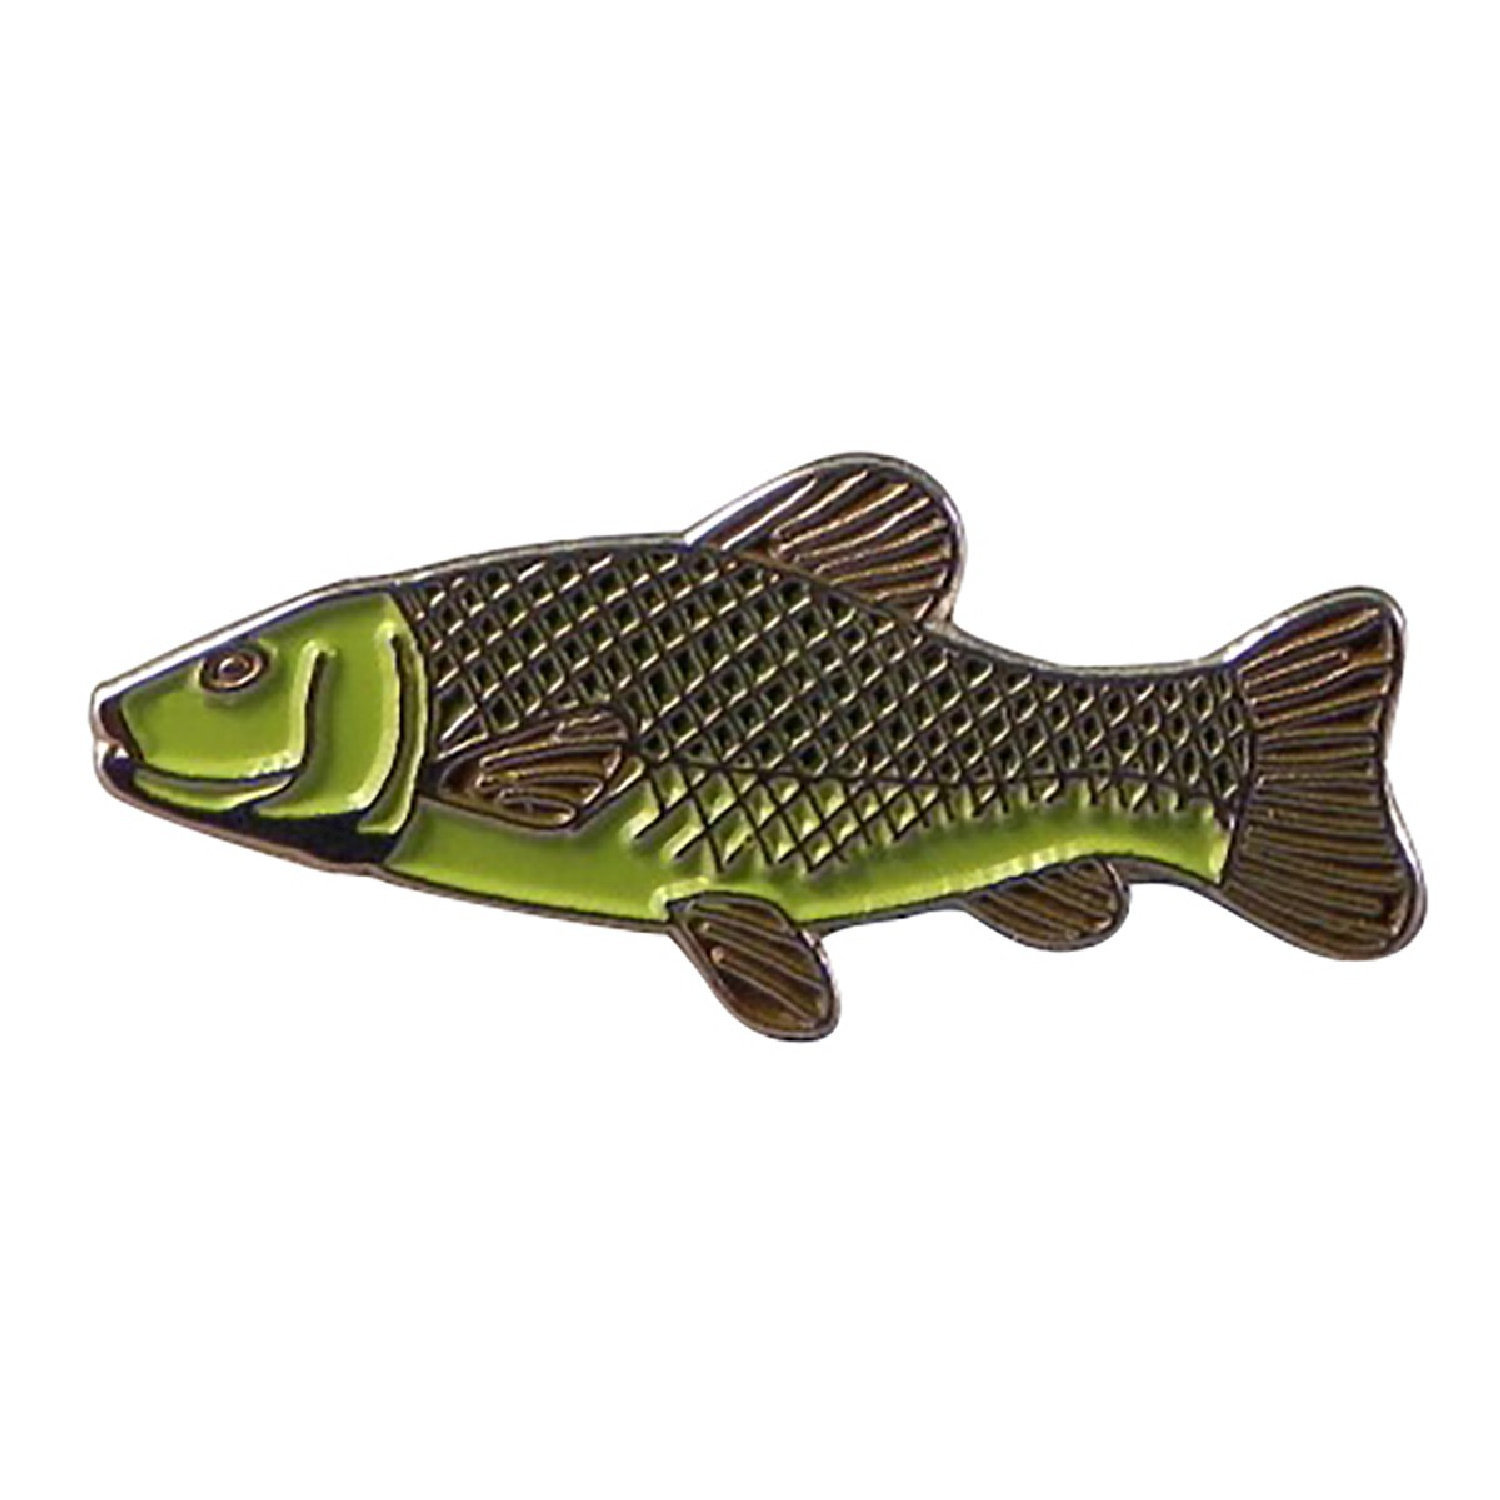 tench fish silver Metal Enamel finish colour Badge Lapel /tie Pin Badge 3d effec